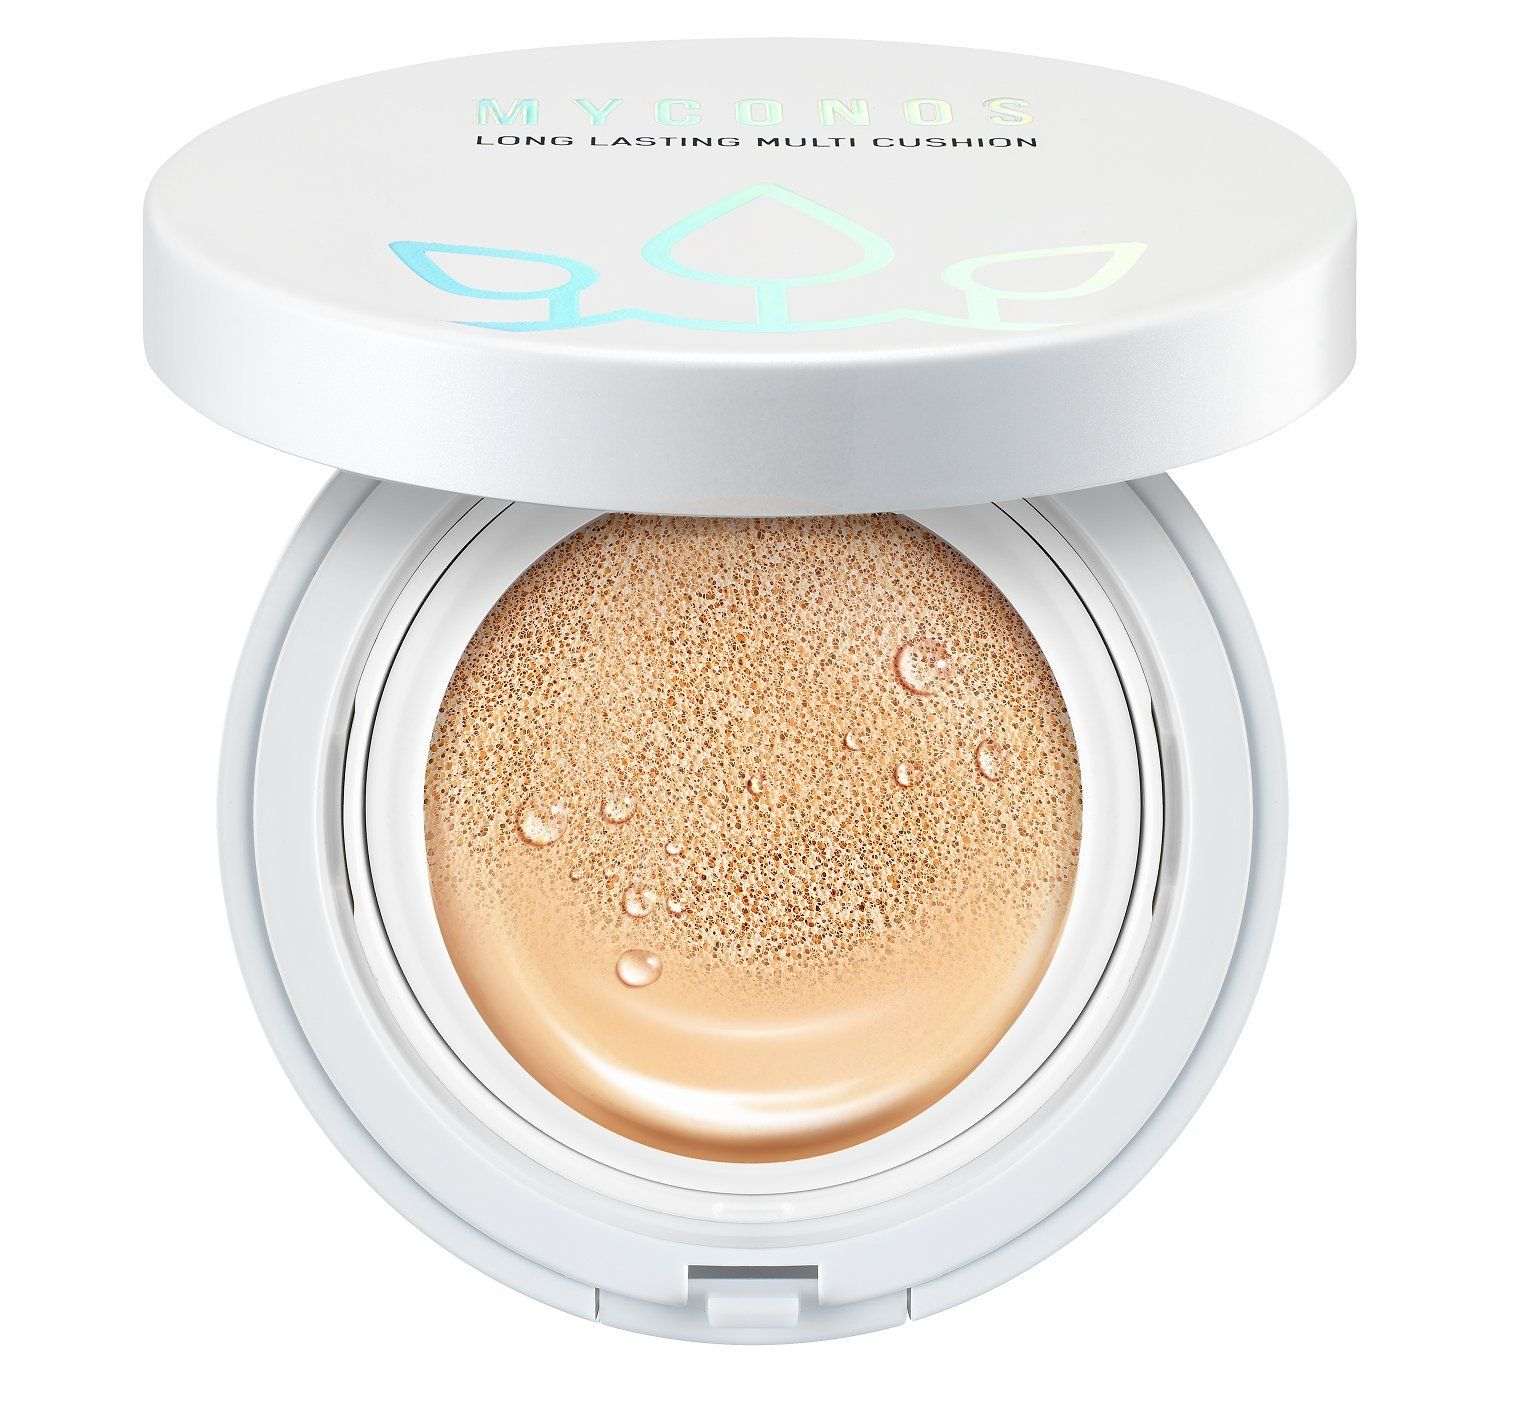 Myconos Magic Bb Cc Moist Air Cushion Compact Korean Cover